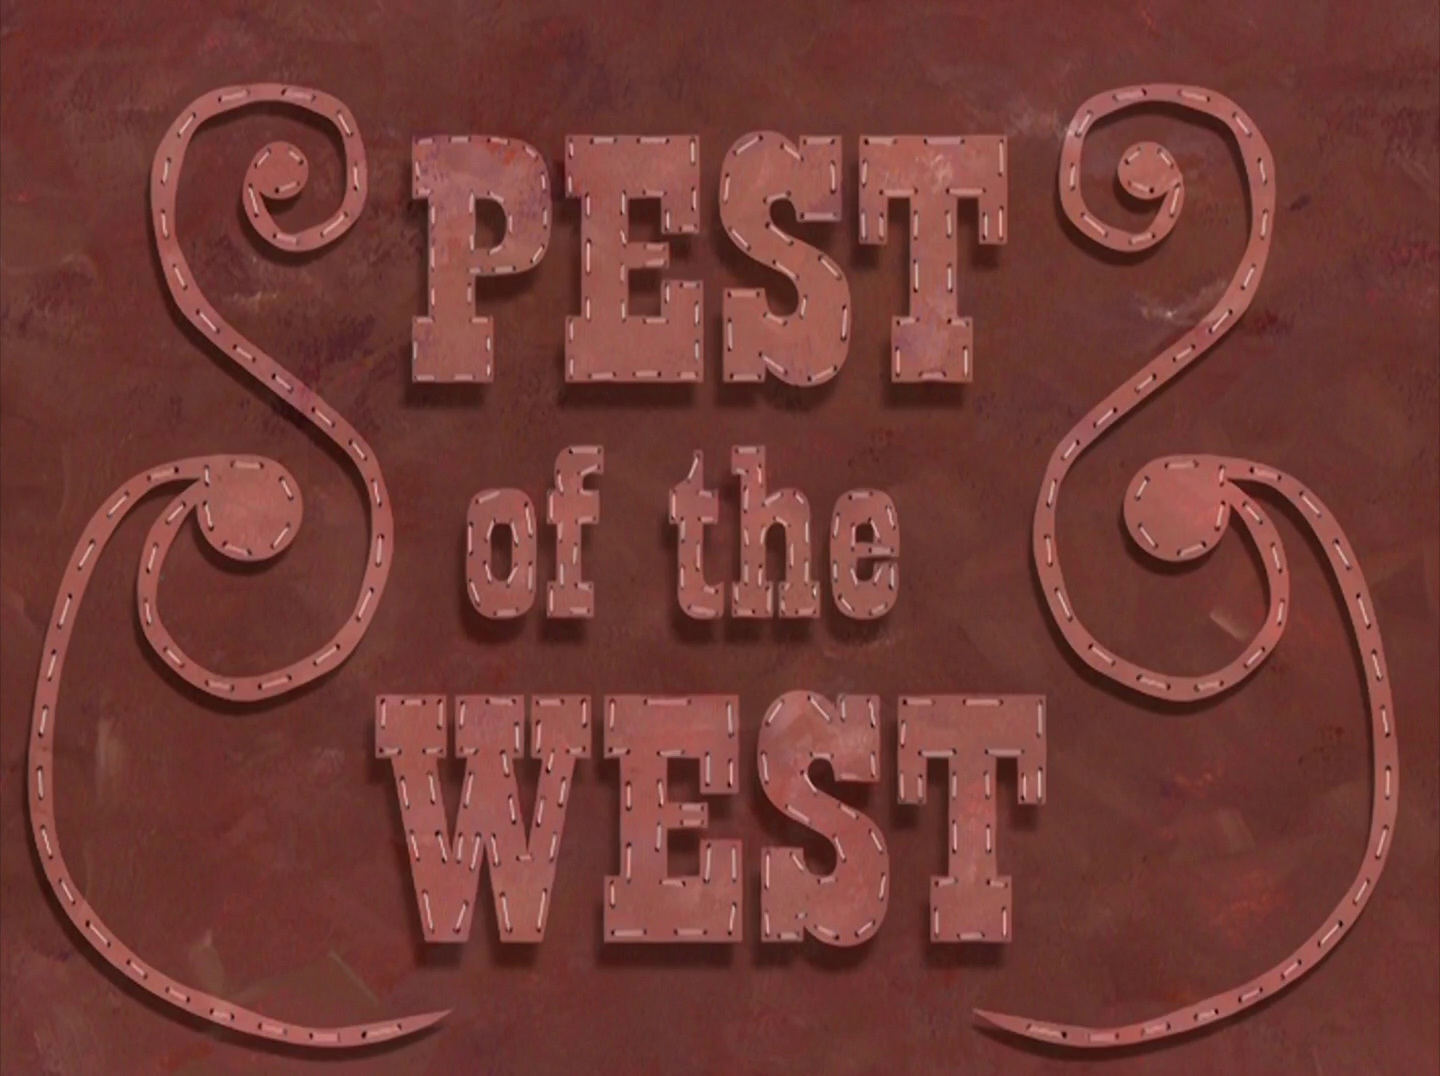 Pest of the West/transcript